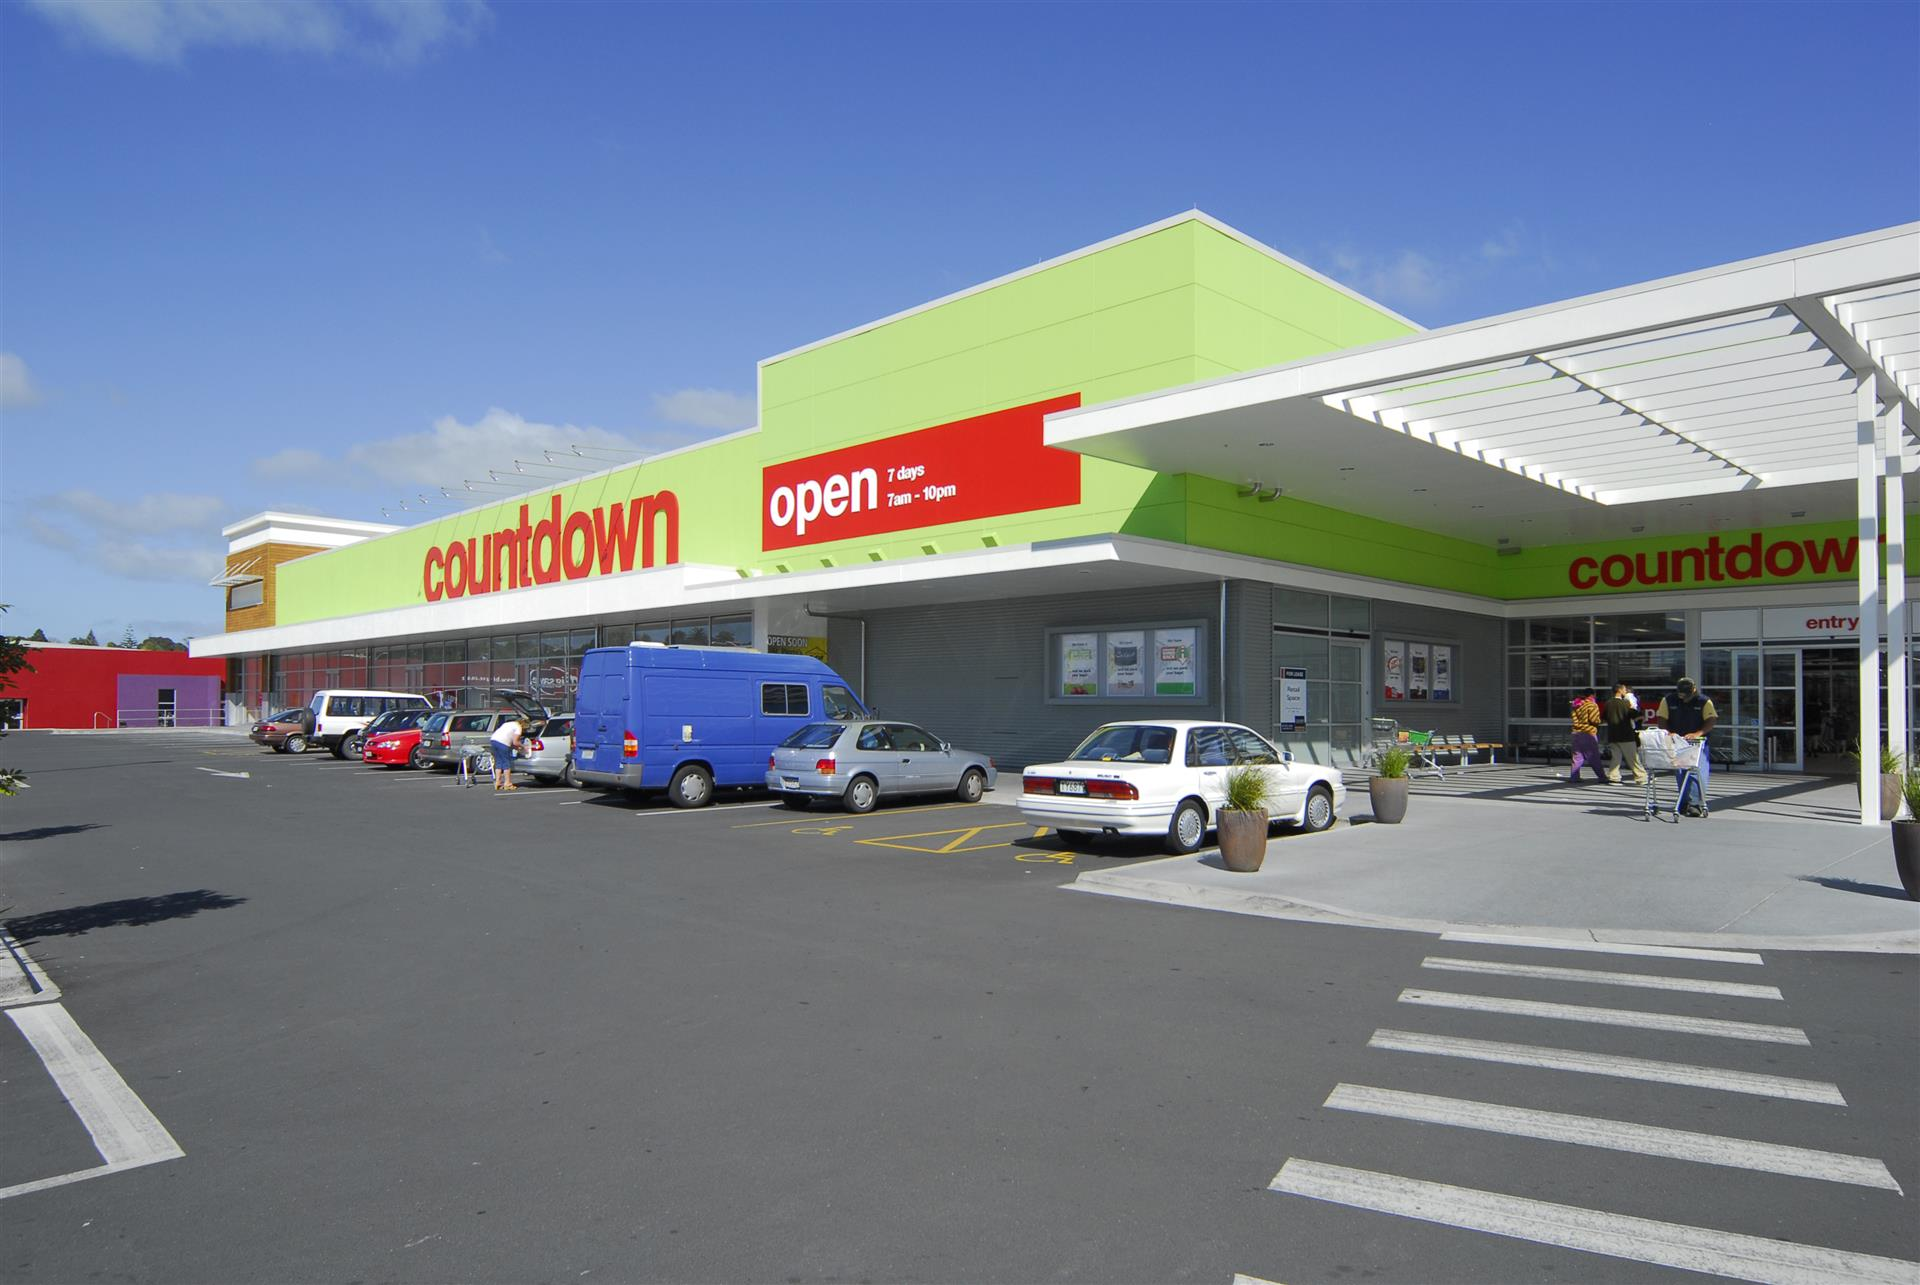 Photo of Countdown, Fraser Cove Shopping Centre, Tauranga